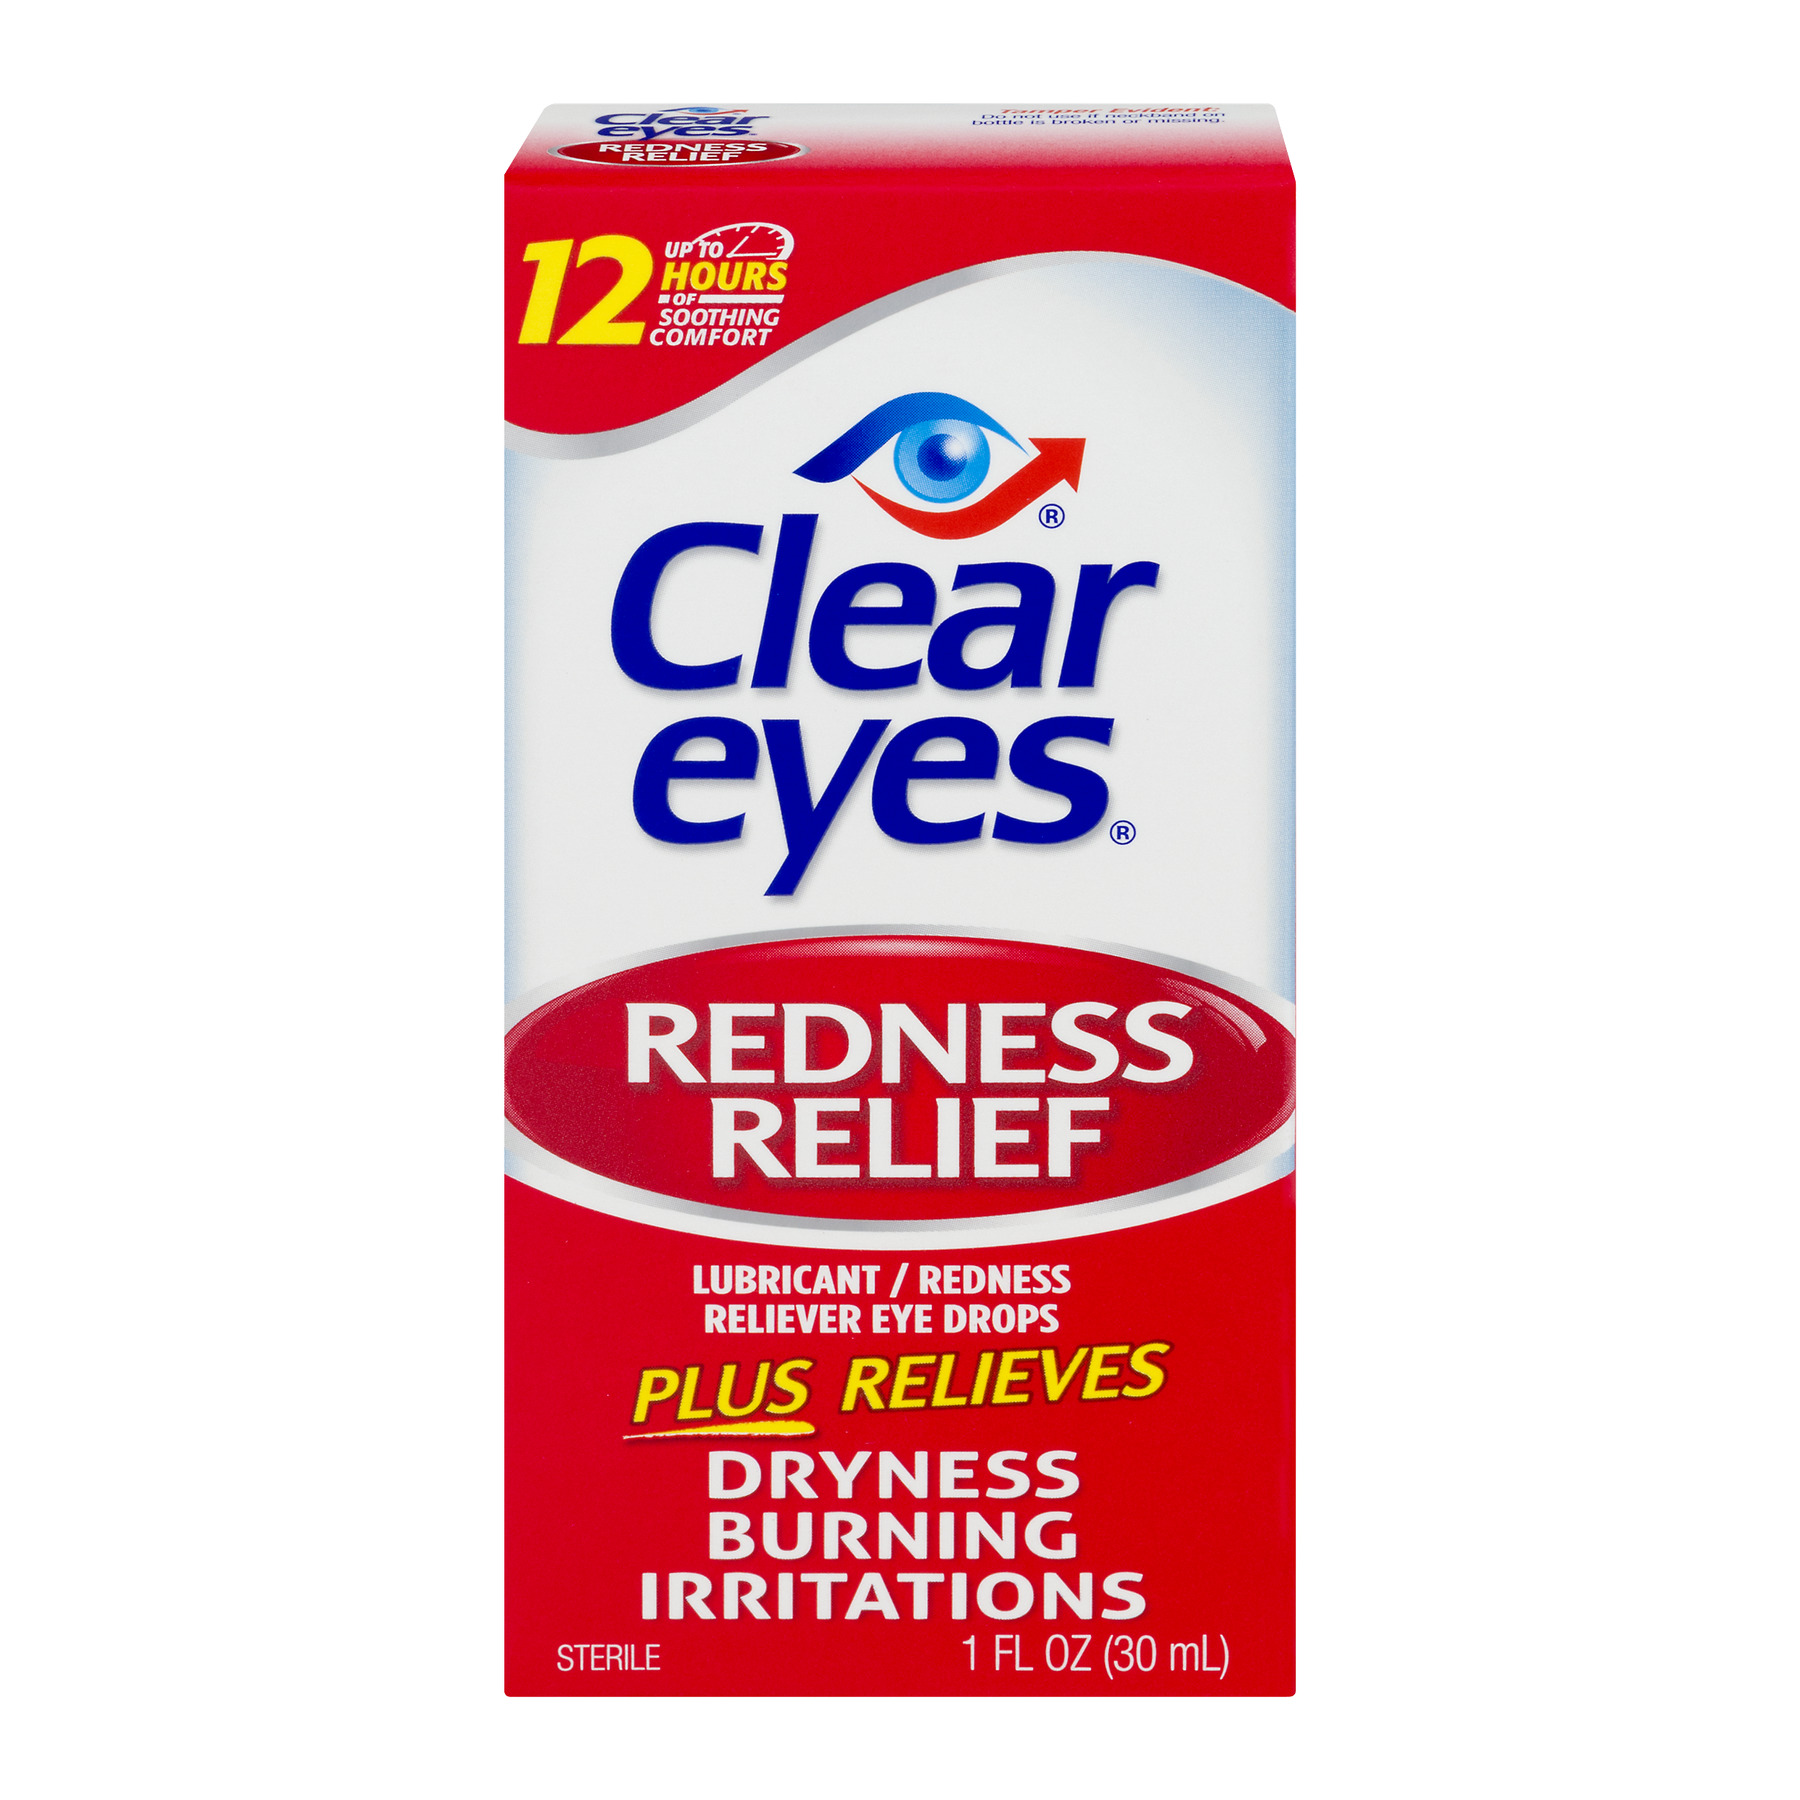 Clear Eyes Redness Relief Lubricant/Redness Reliever Eye Drops, 1.0 FL OZ